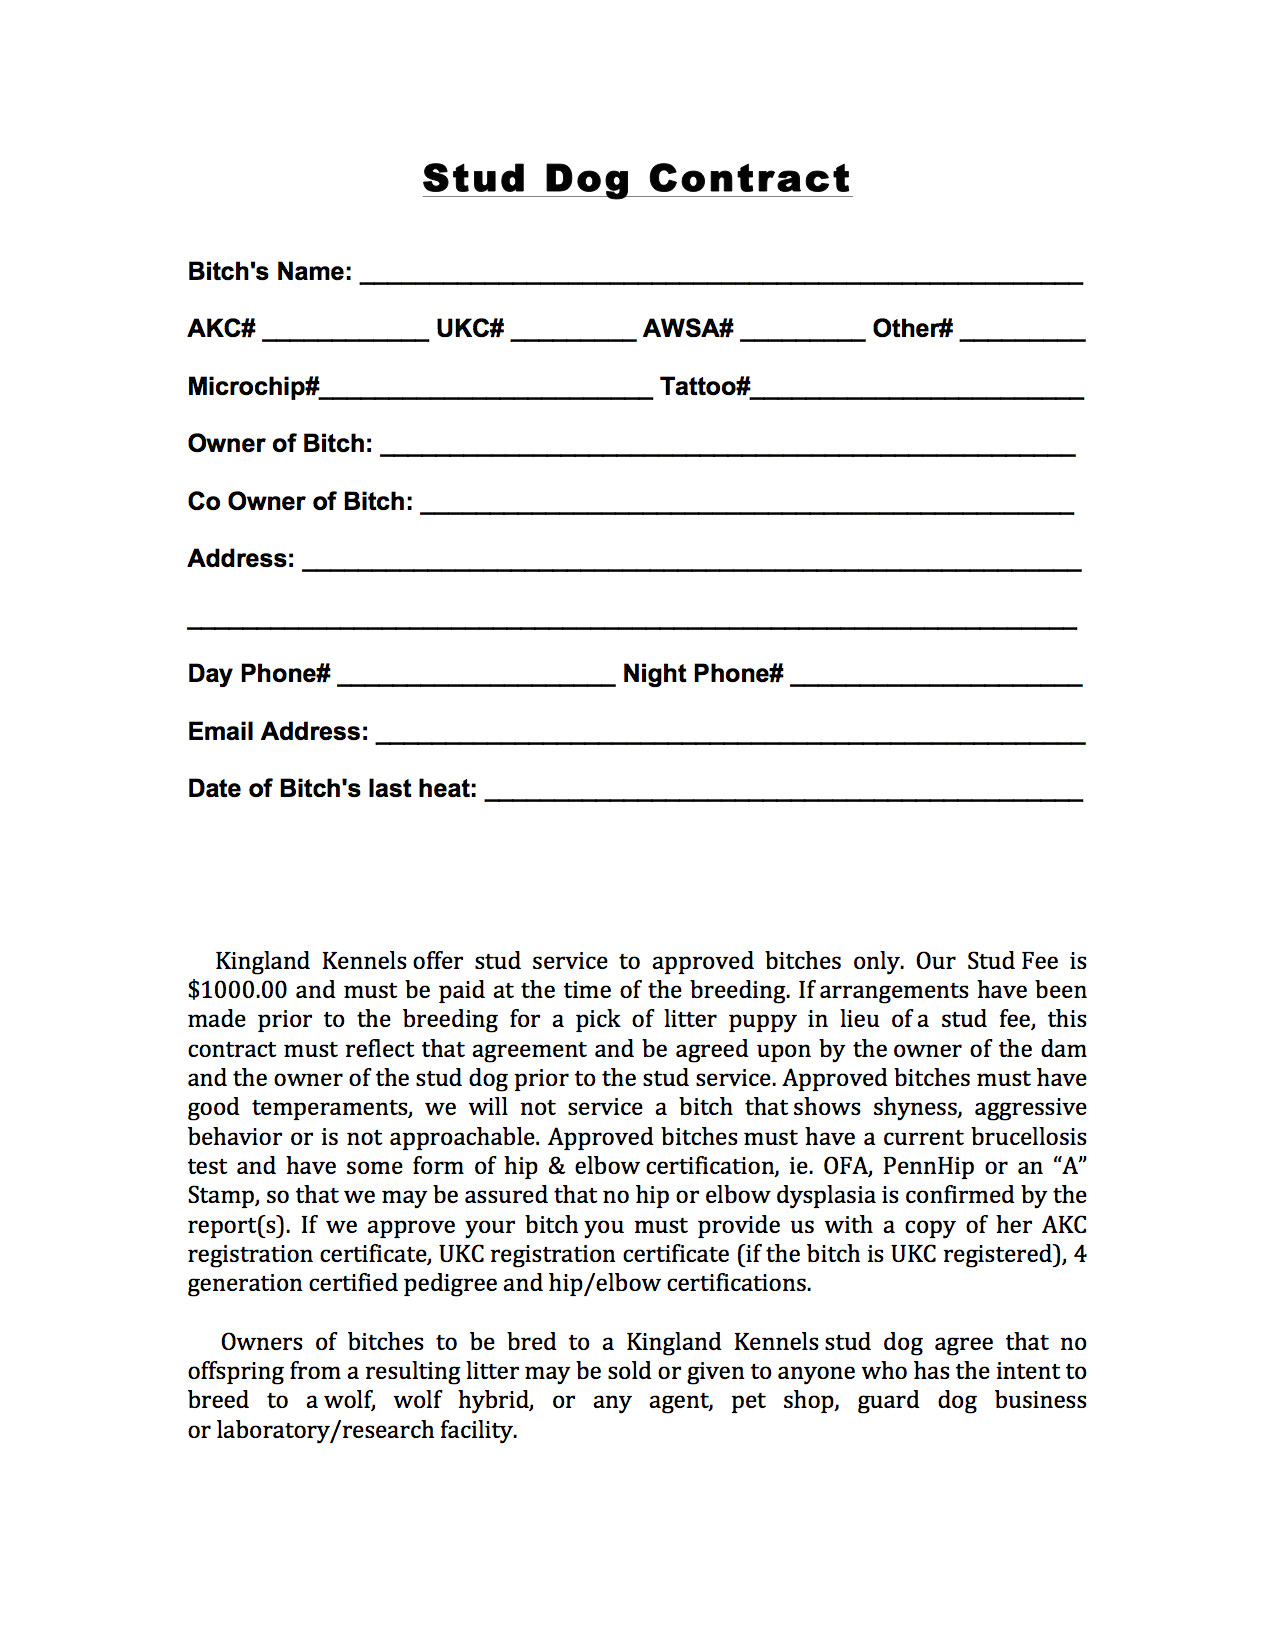 Stud Dog Contract Template Stud Contract Kingland Kennelskingland Kennels